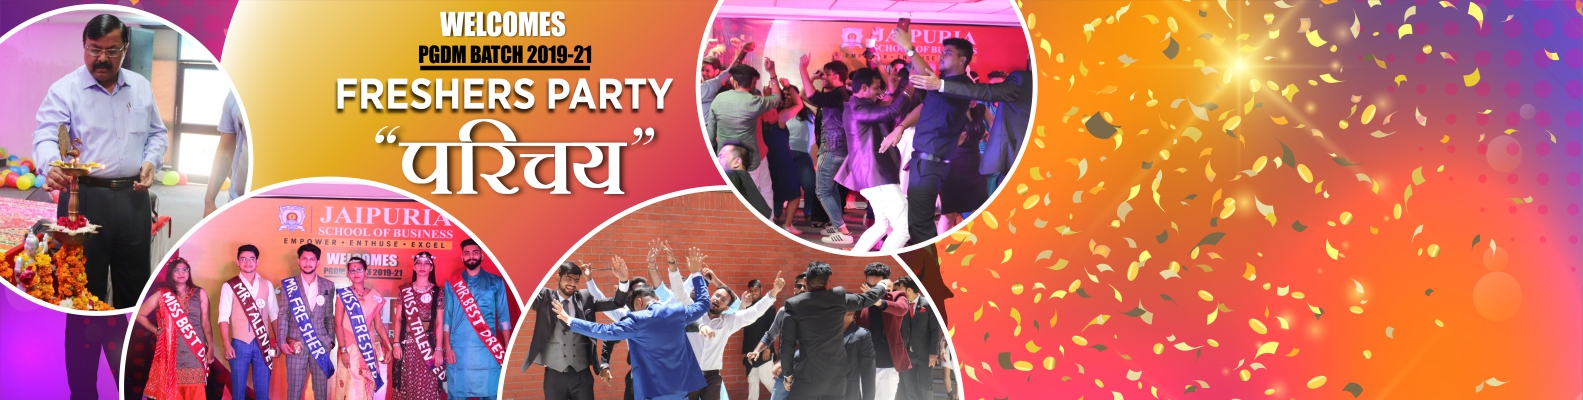 1583-x-400-web-PGDM-fresher-party-collage-new